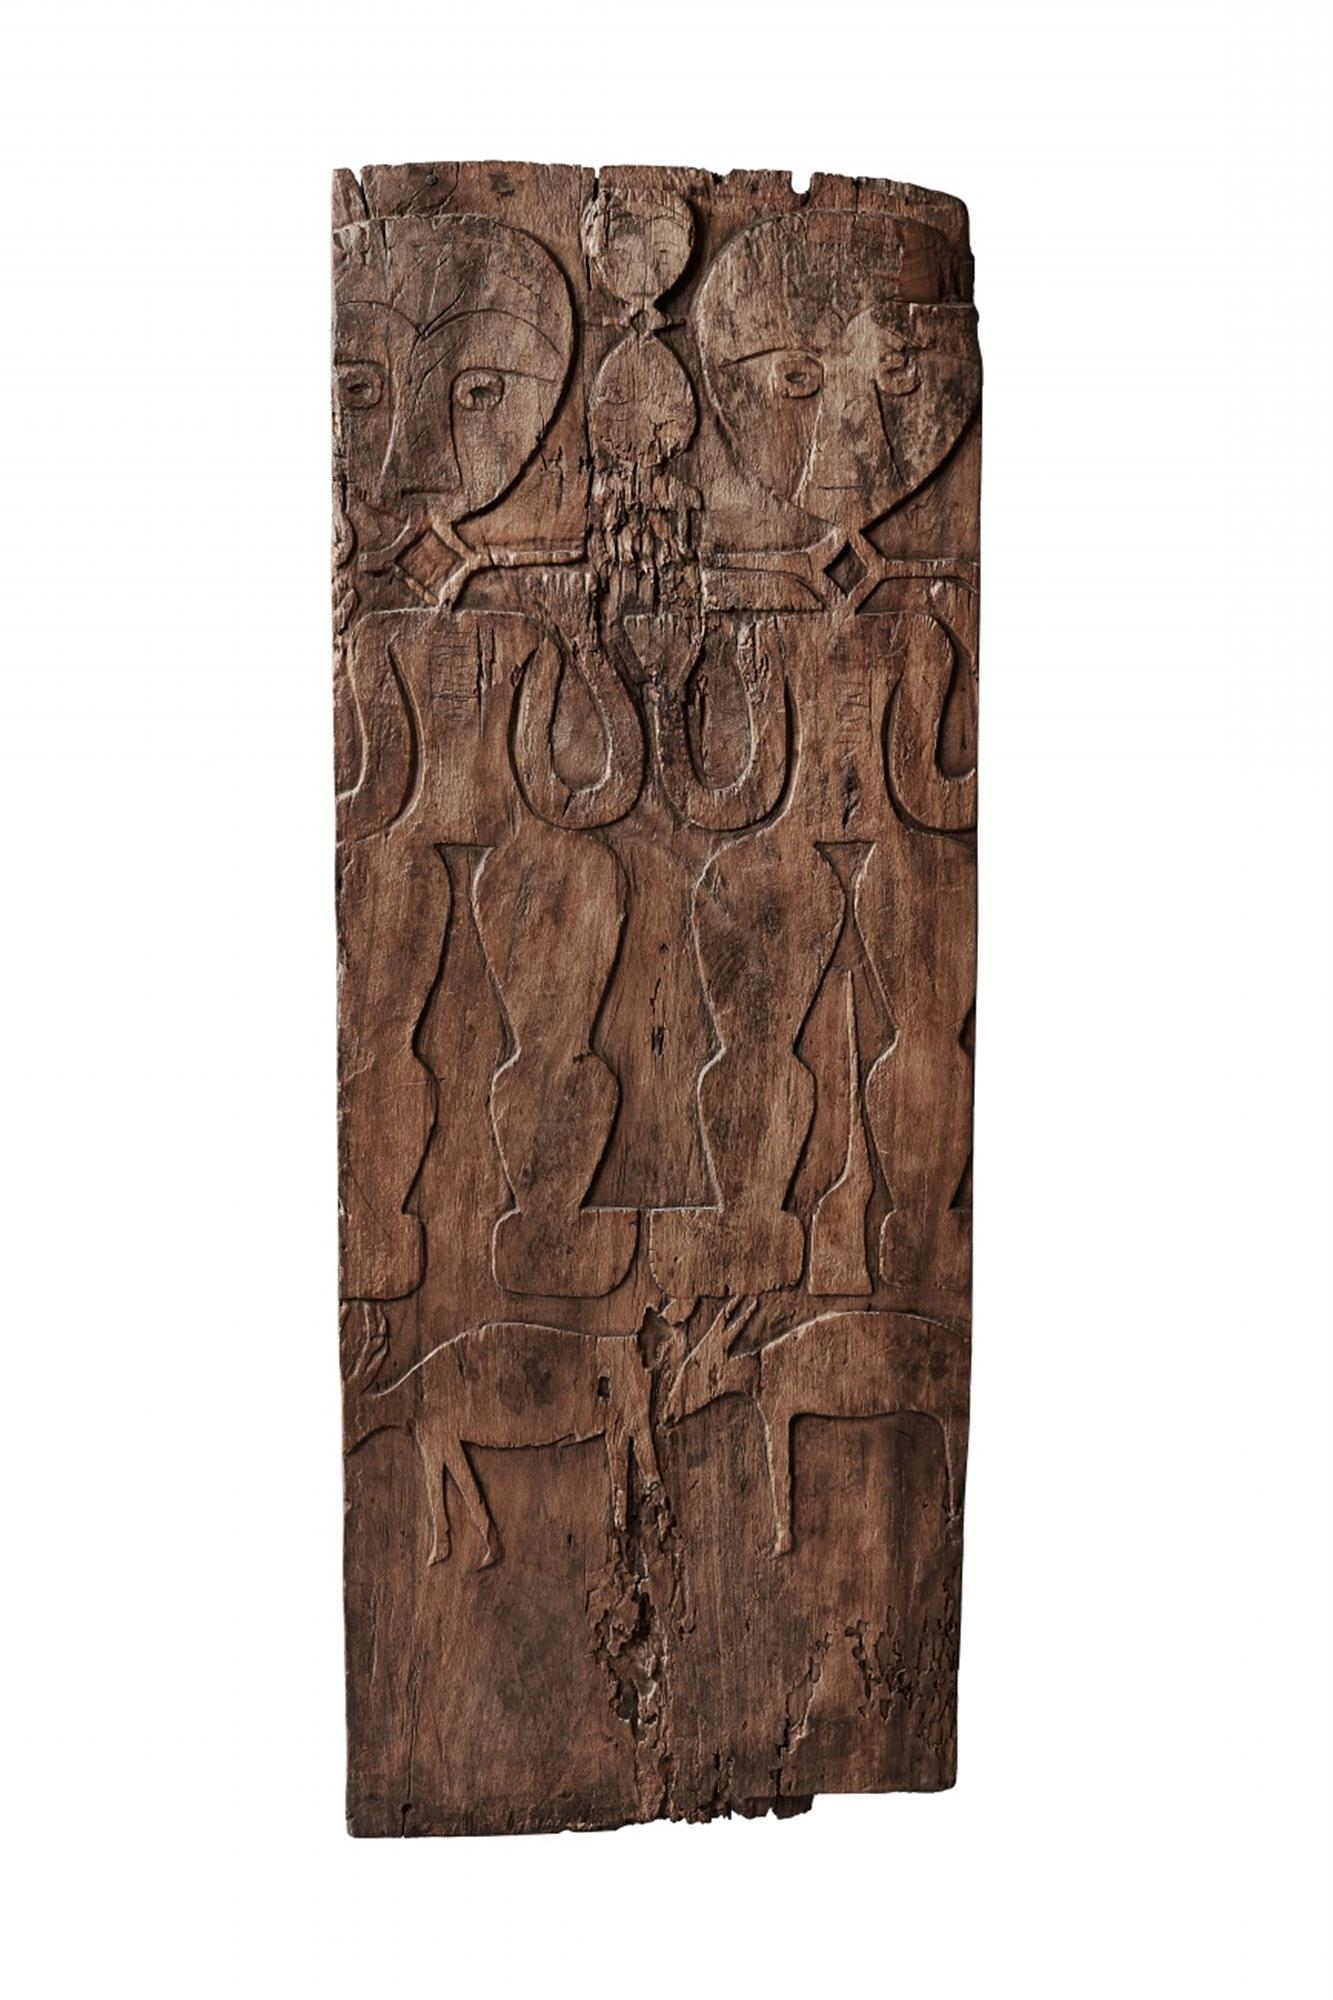 A PAIWAN HOUSE PANEL